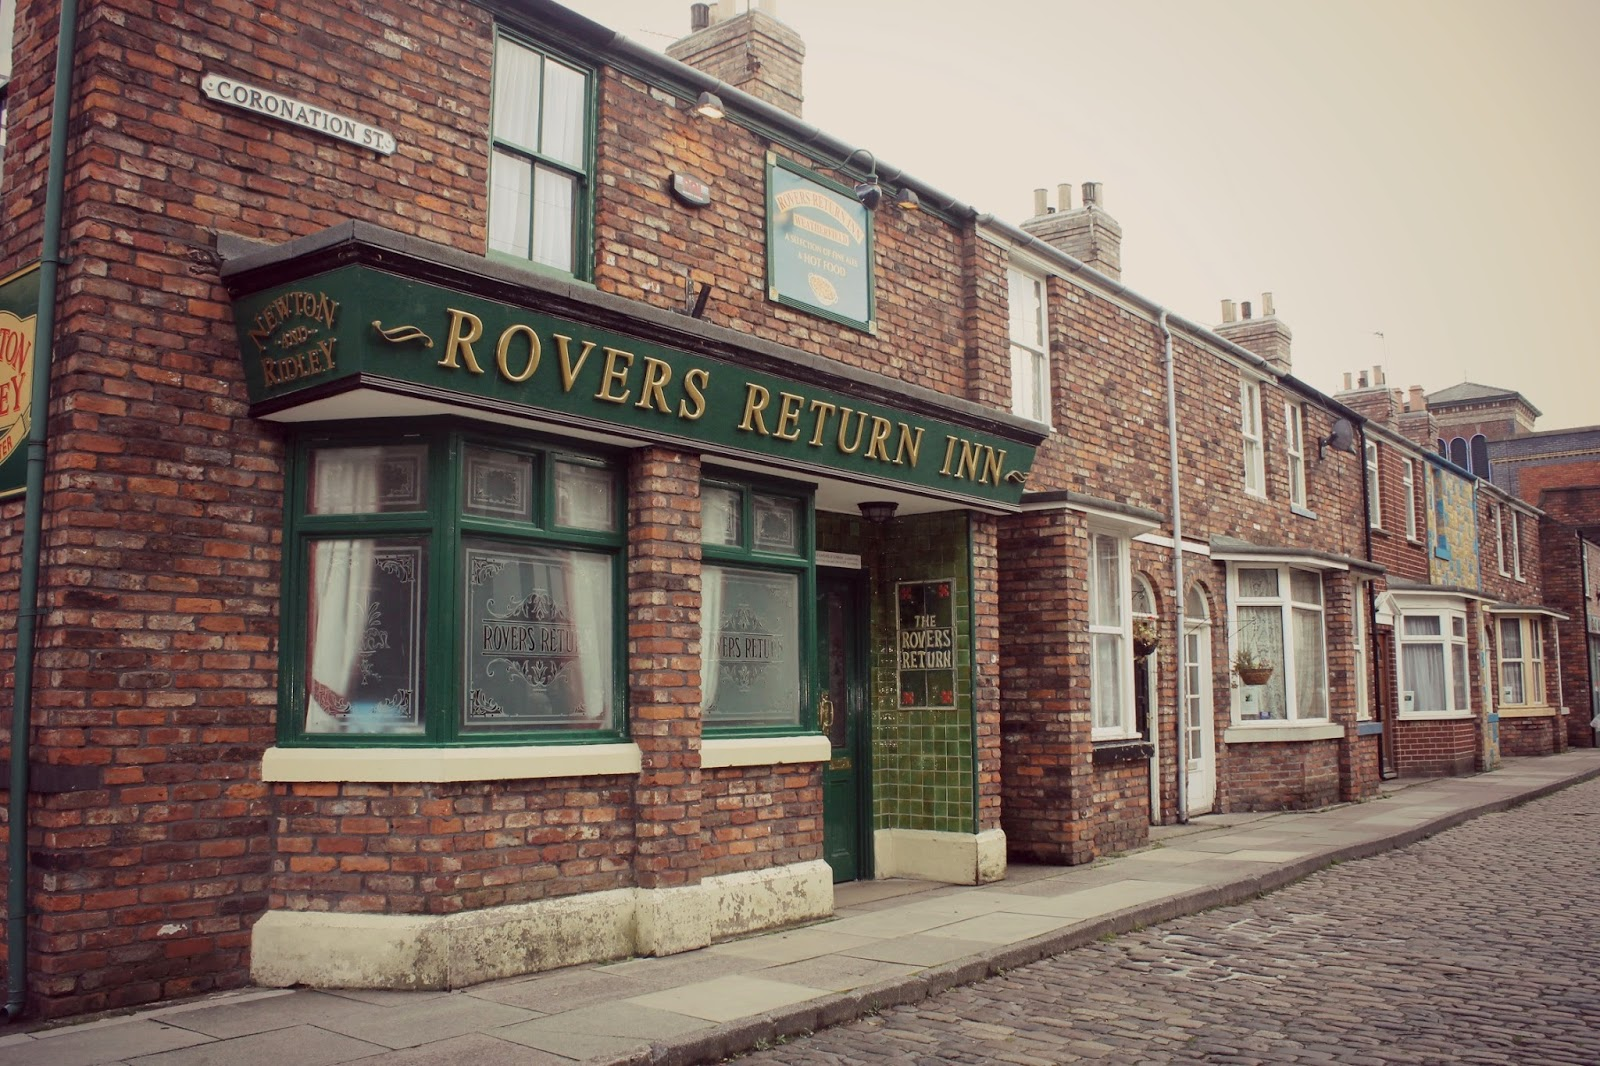 day out to coronation st studio